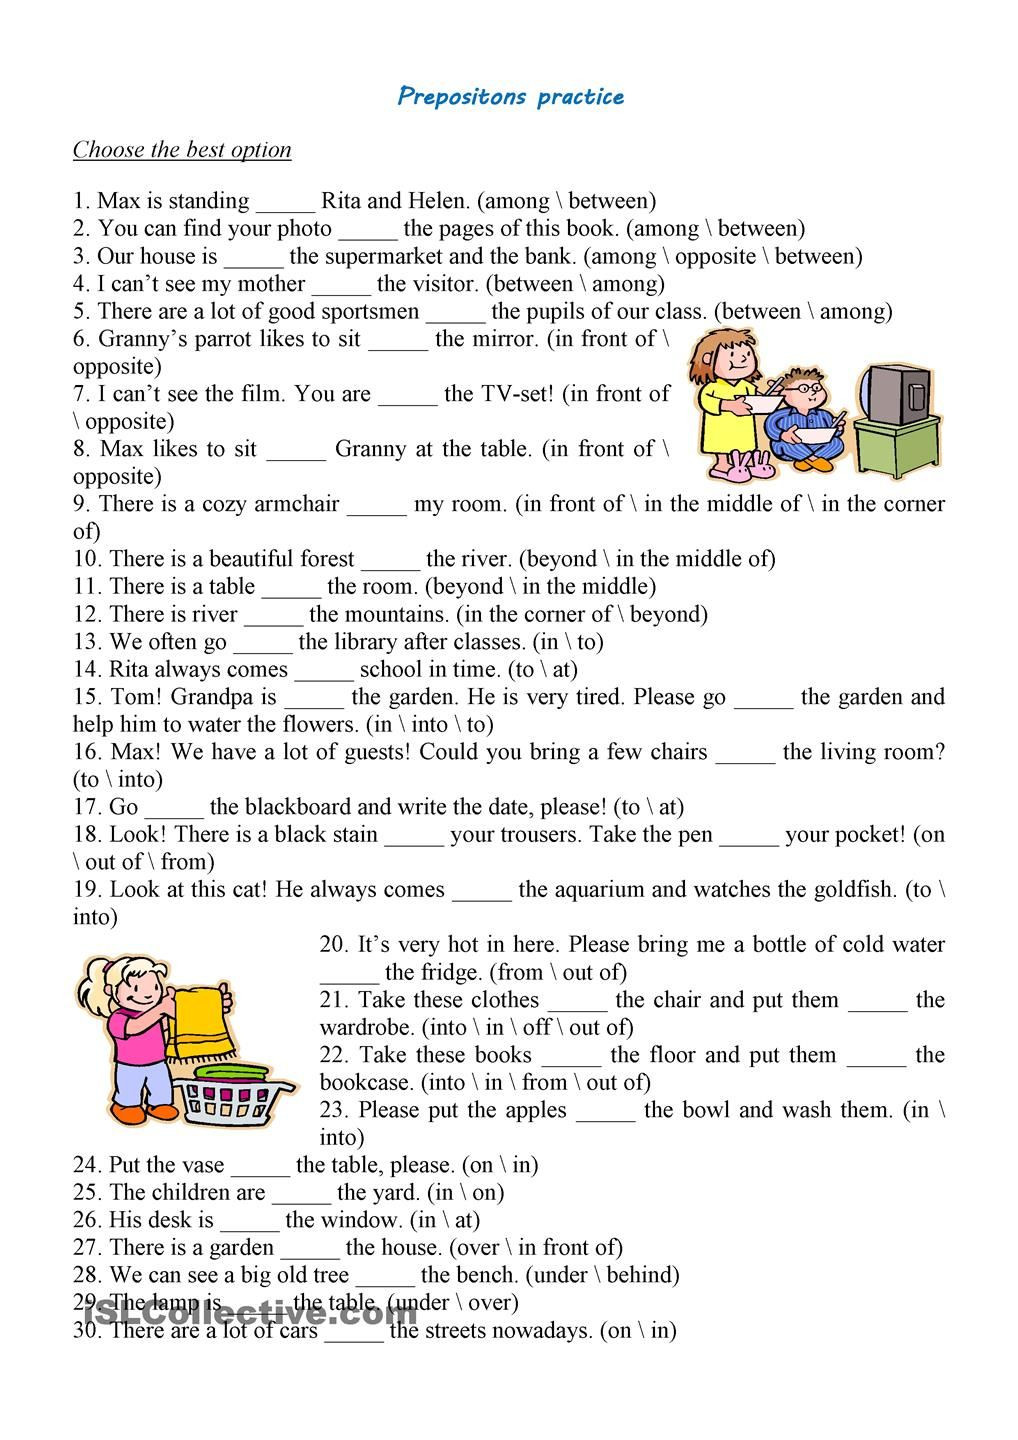 Prepositions Worksheets Middle School Prepositions Practice